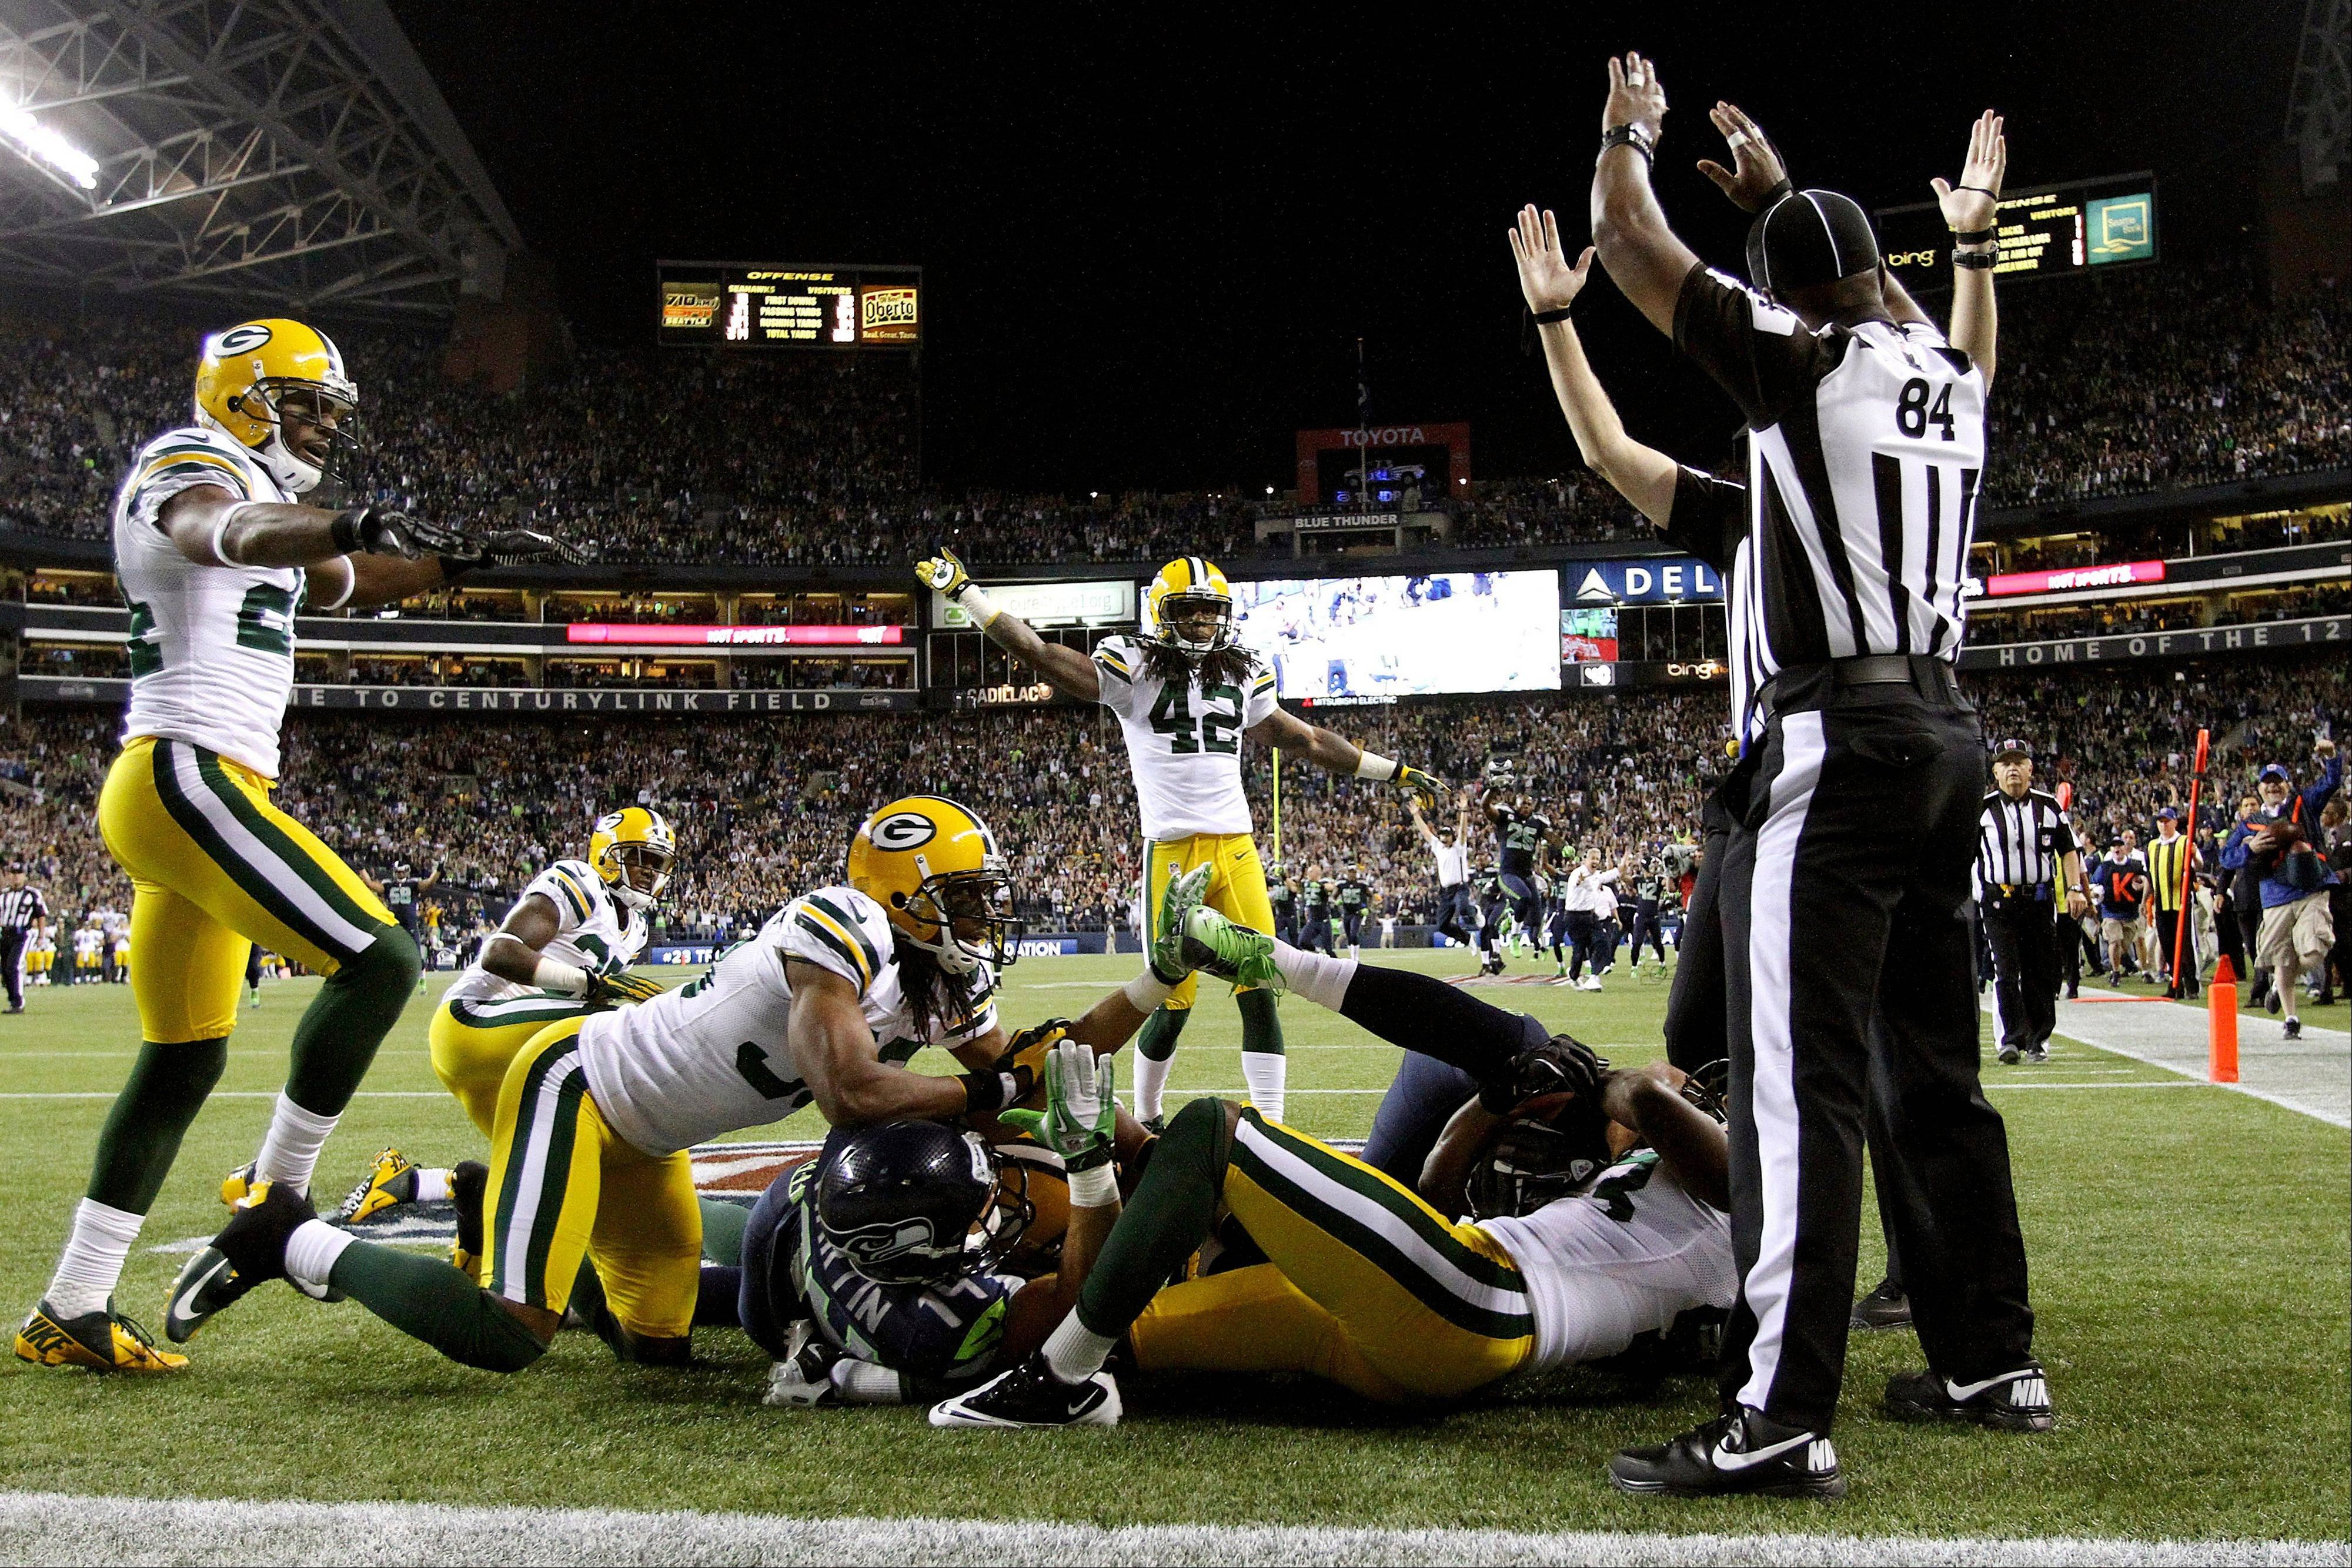 Replacement officials signal a touchdown after Seattle Seahawks wide receiver Golden Tate pulled in a last-second pass from quarterback Russell Wilson to defeat the Green Bay Packers 14-12 Monday night. Negotiations between locked-out officials and the NFL have resumed.